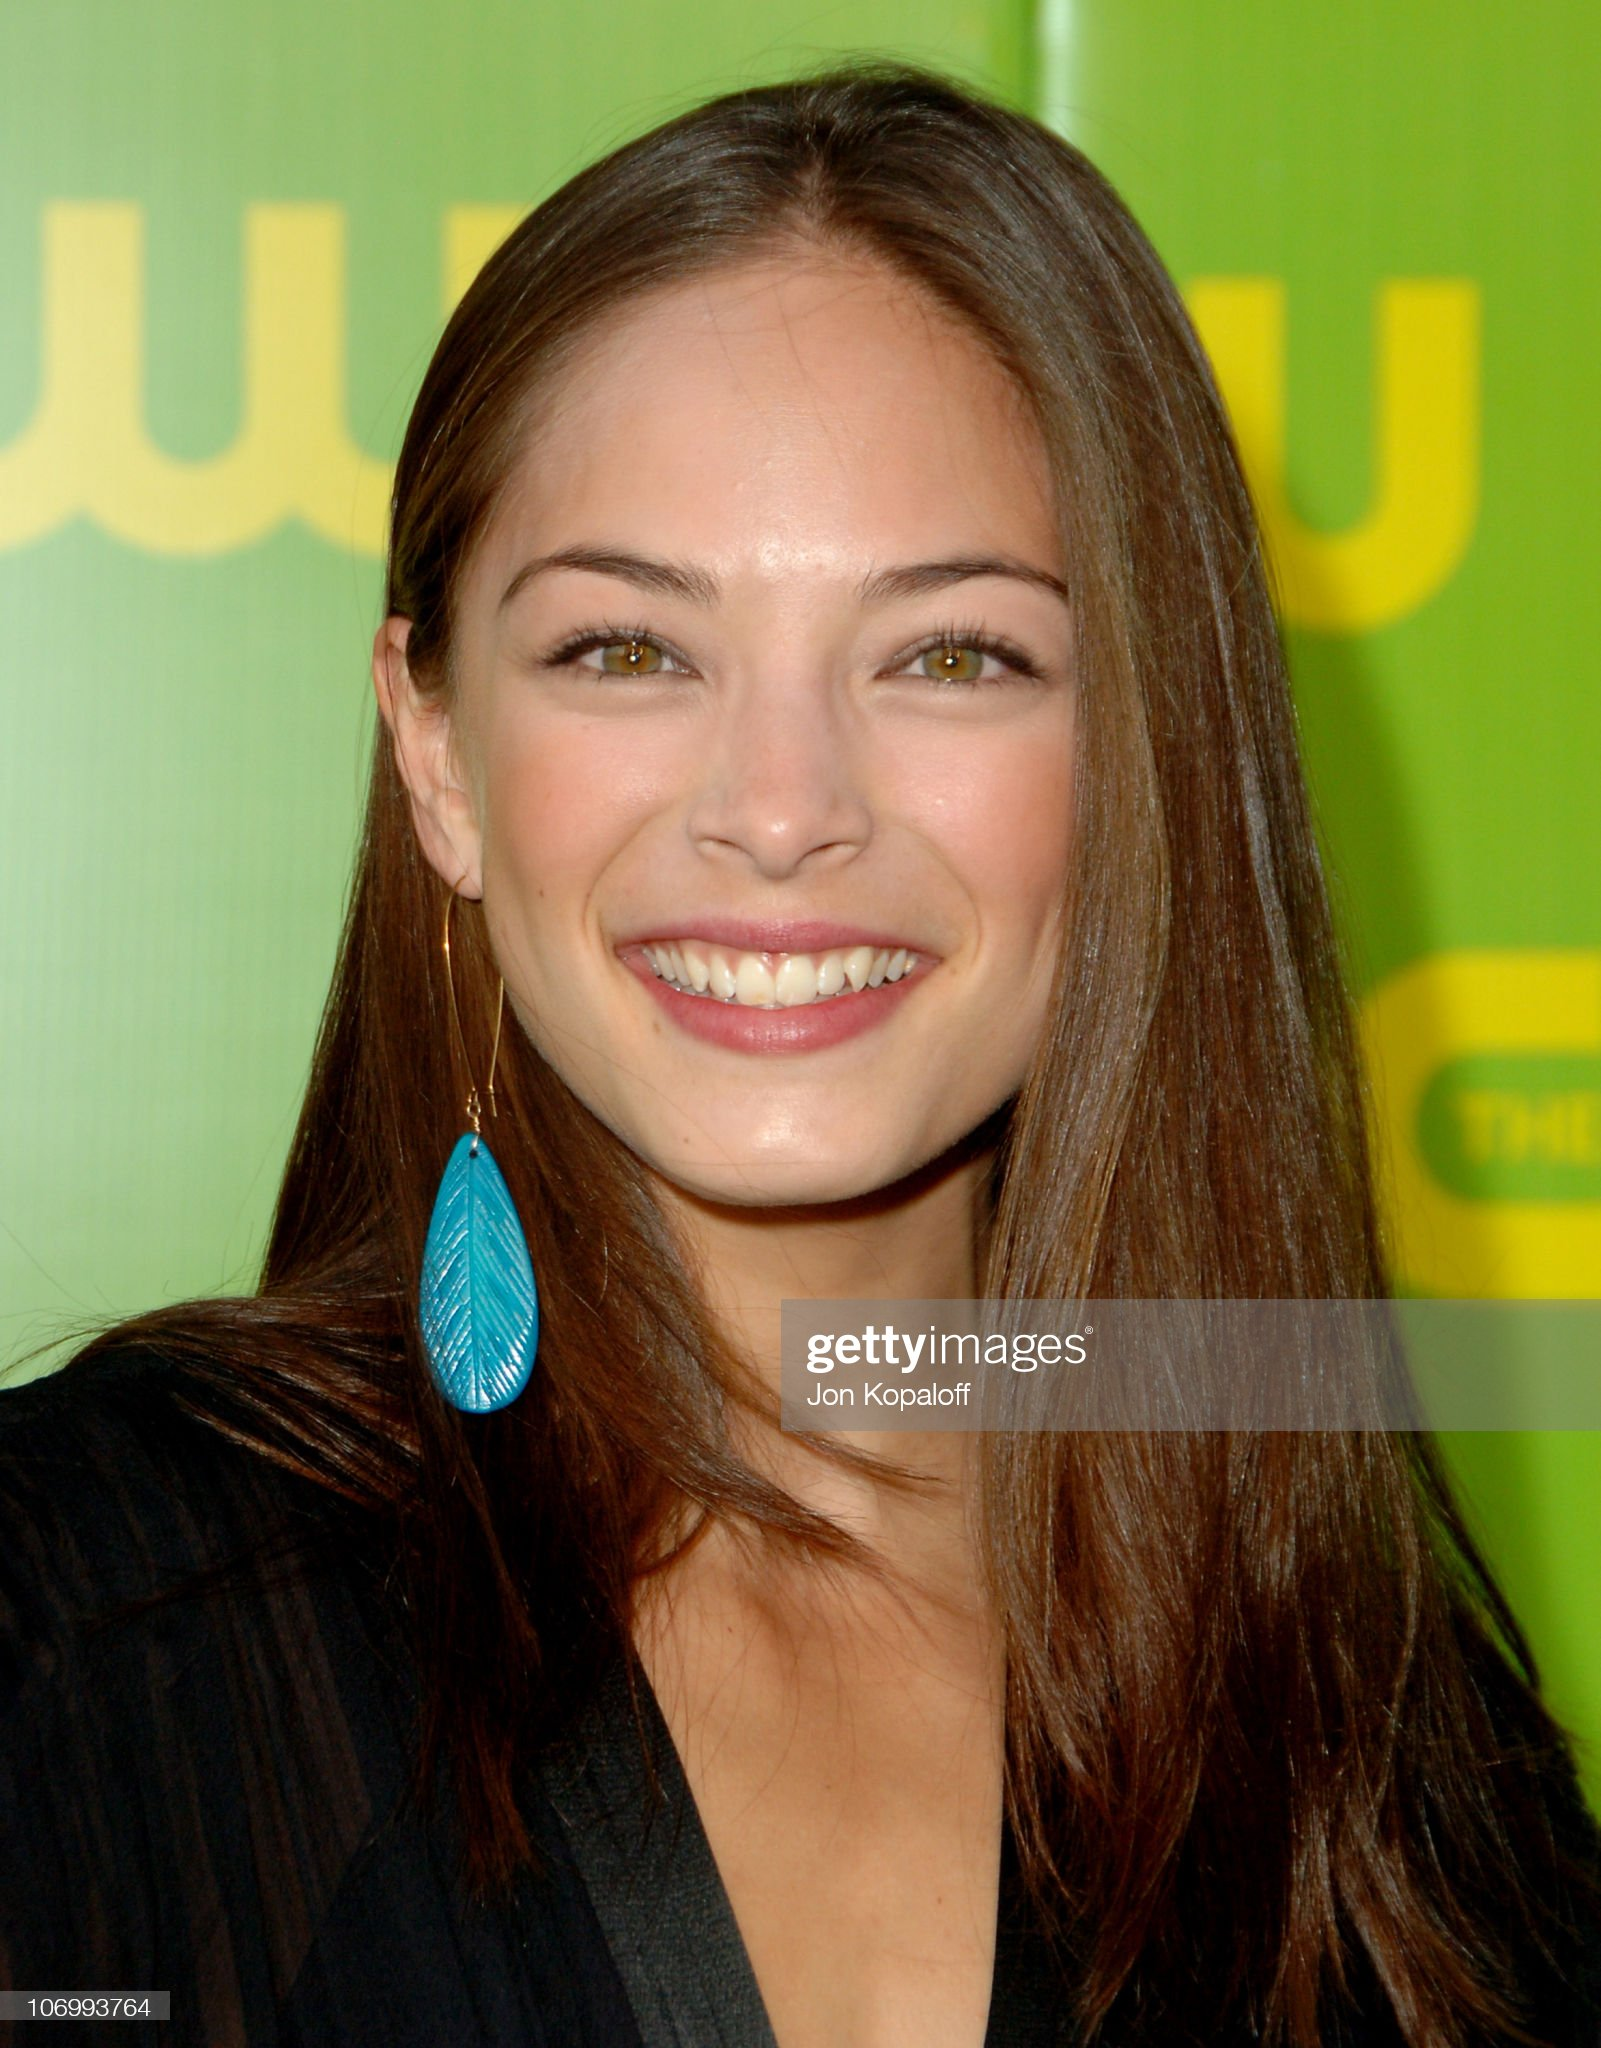 COLOR DE OJOS (clasificación y debate de personas famosas) Kristin-kreuk-during-the-cw-launch-party-arrivals-at-wb-main-lot-in-picture-id106993764?s=2048x2048